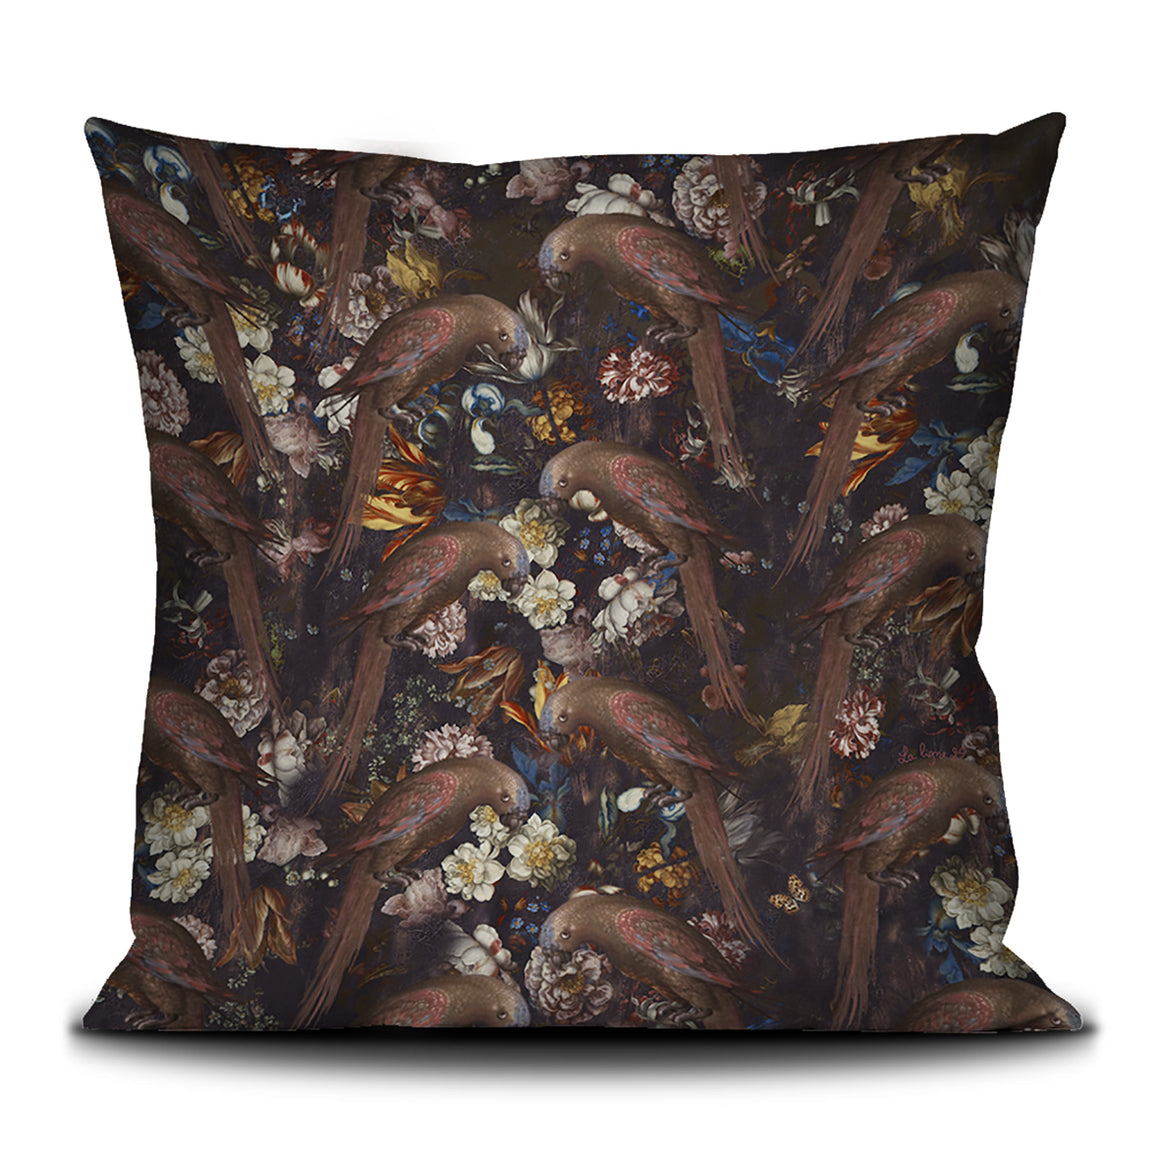 Judith scatter cushion